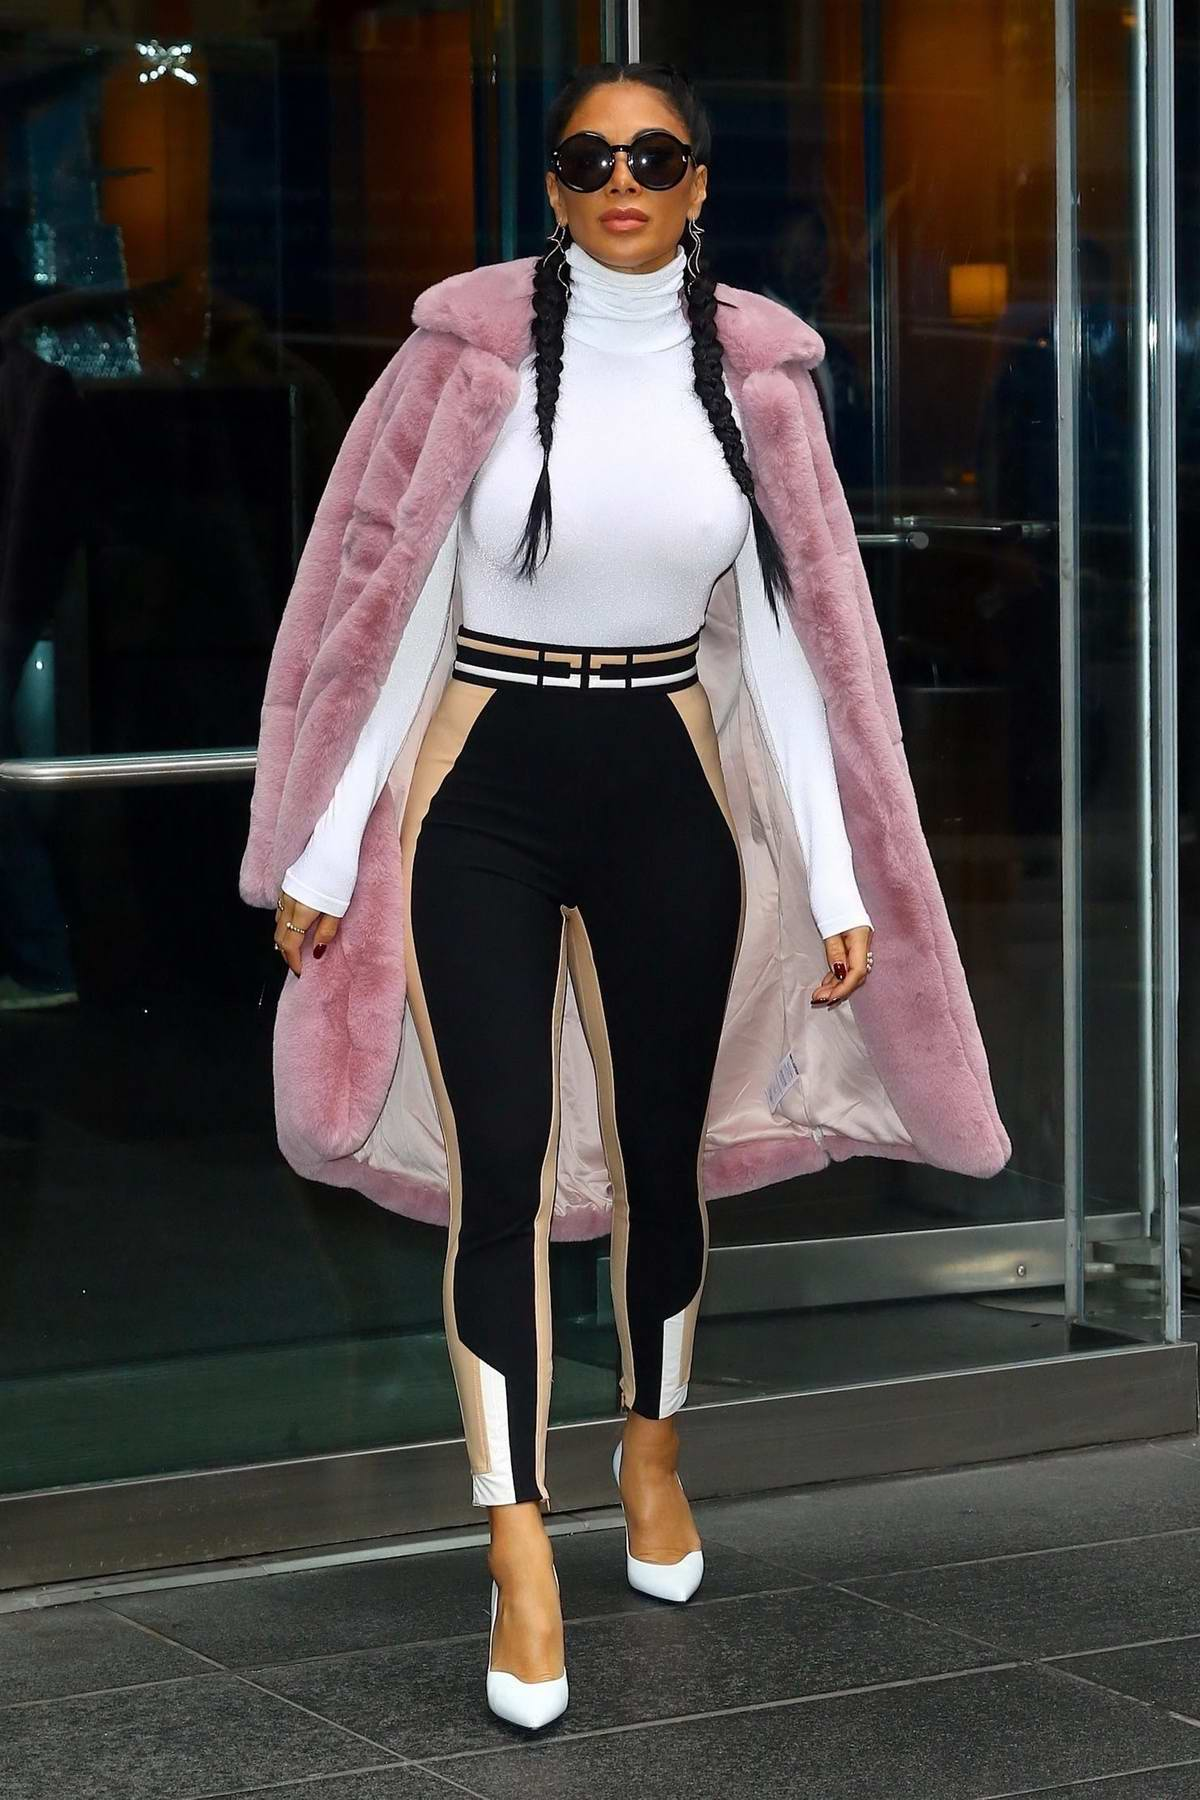 Nicole Scherzinger puts on a stylish display as she stops by the Time Warner Center in New York City